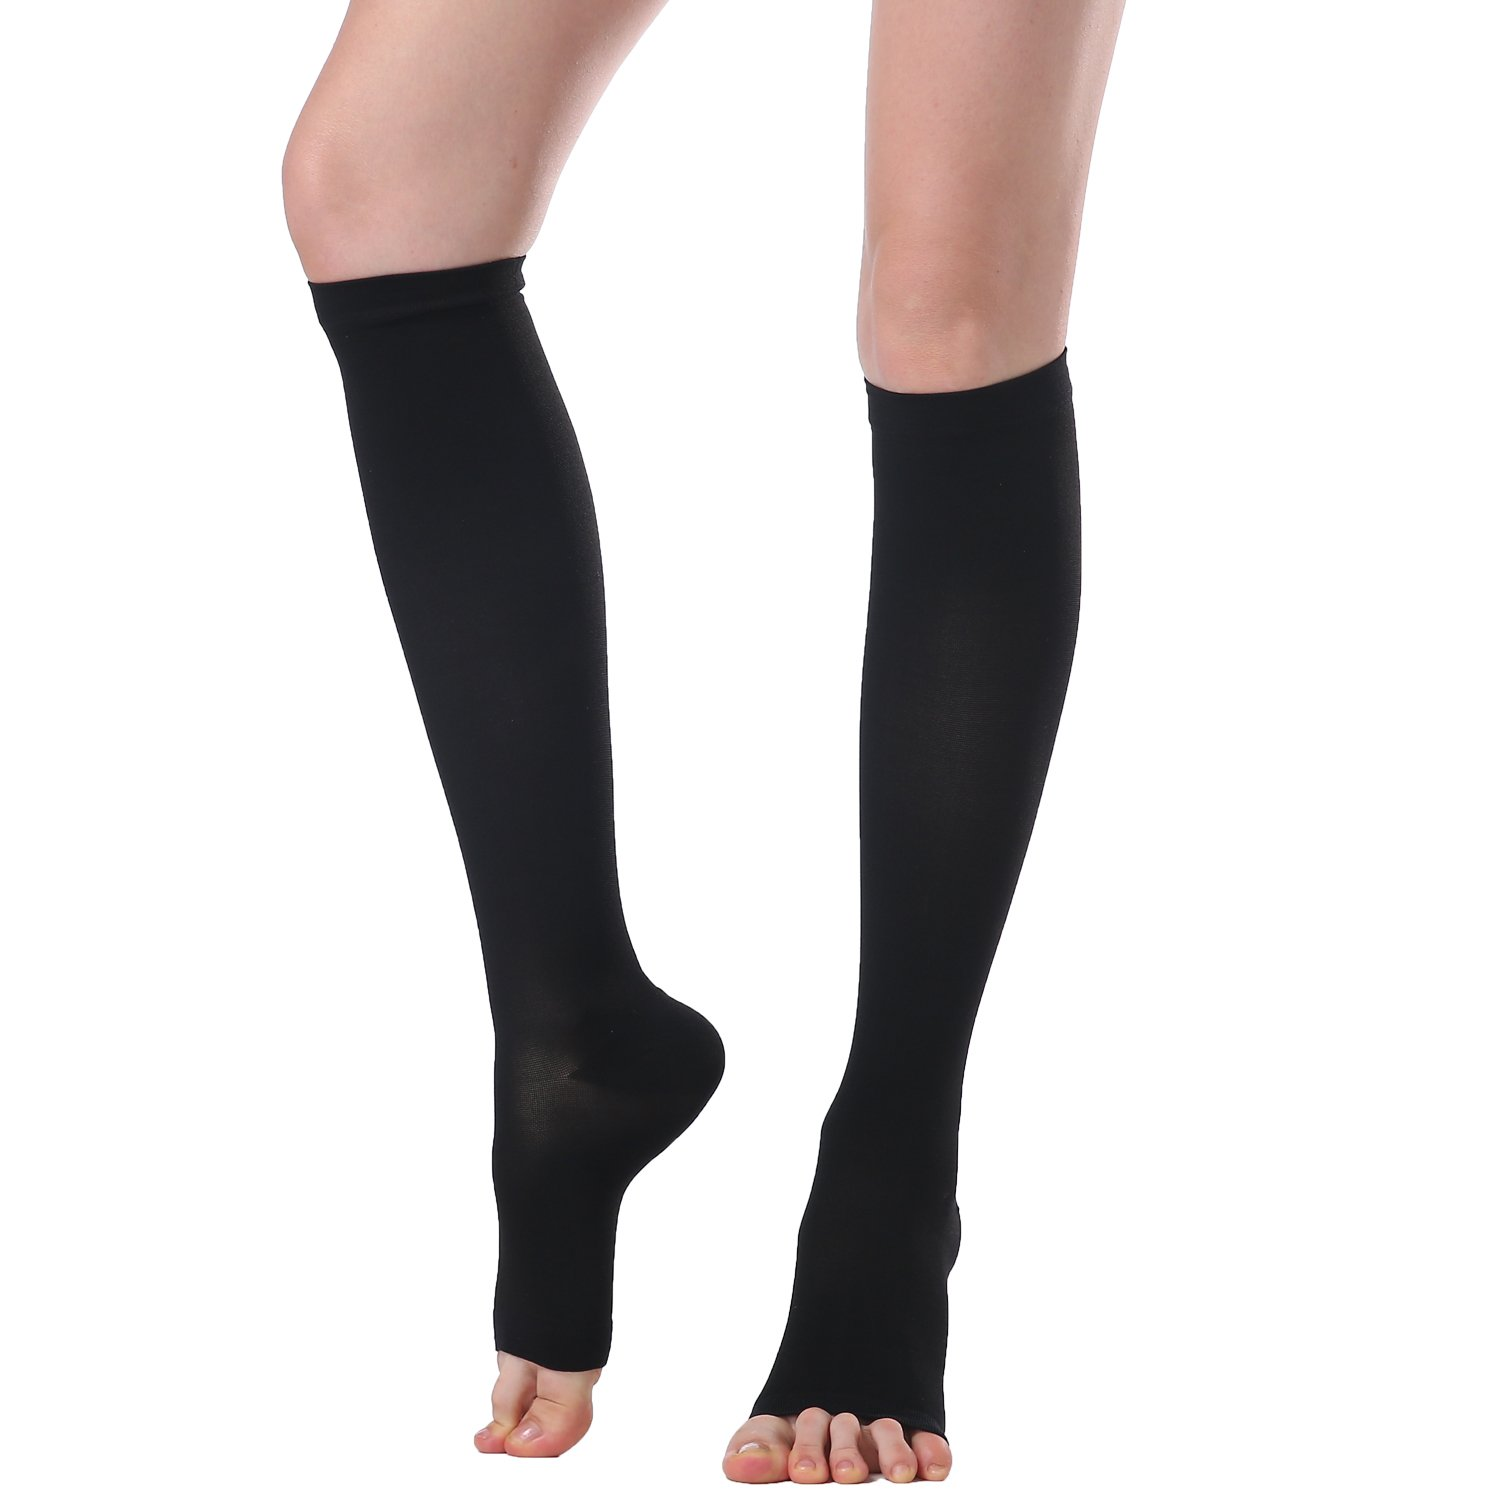 Compression Stockings & Stovepipe Socks Slimming Legging Knee High Sock For Women&Men-20-30mmHg-30-40mmHg Medical Support Hose Compression Socks,Treatment For Swelling,Varicose Veins (L, Black(D))